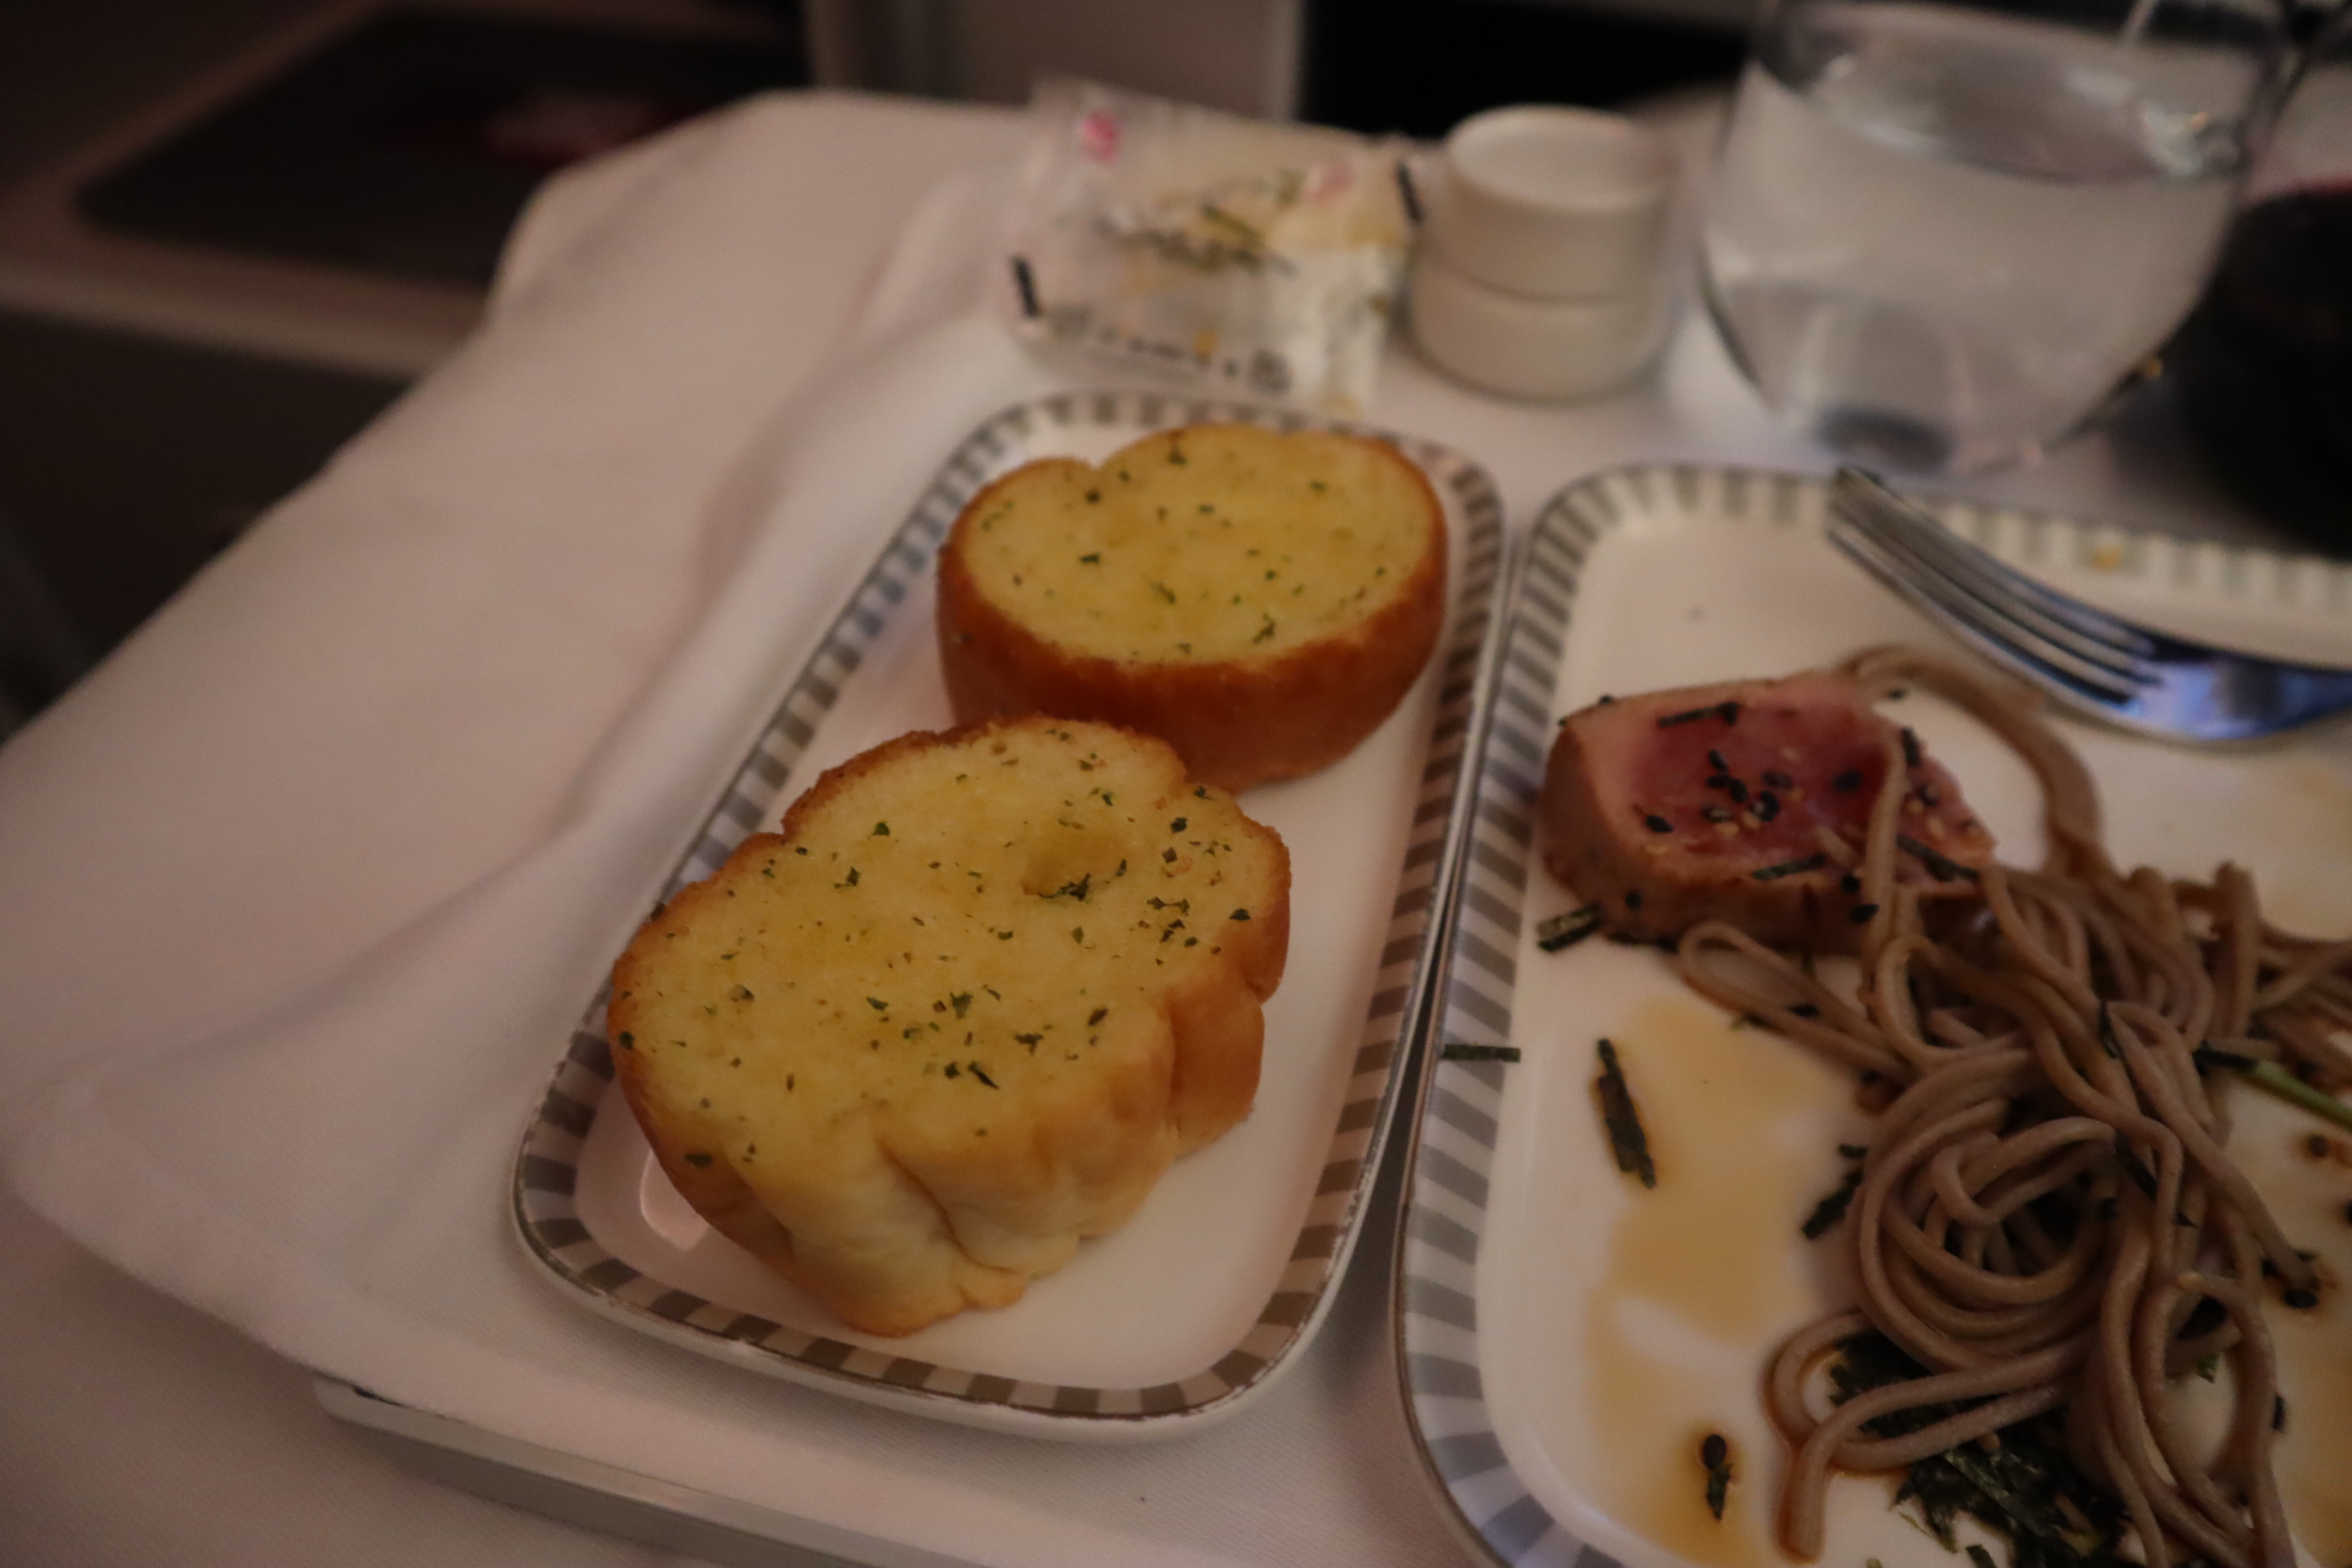 Singapore Airlines 787-10 business class – Garlic bread